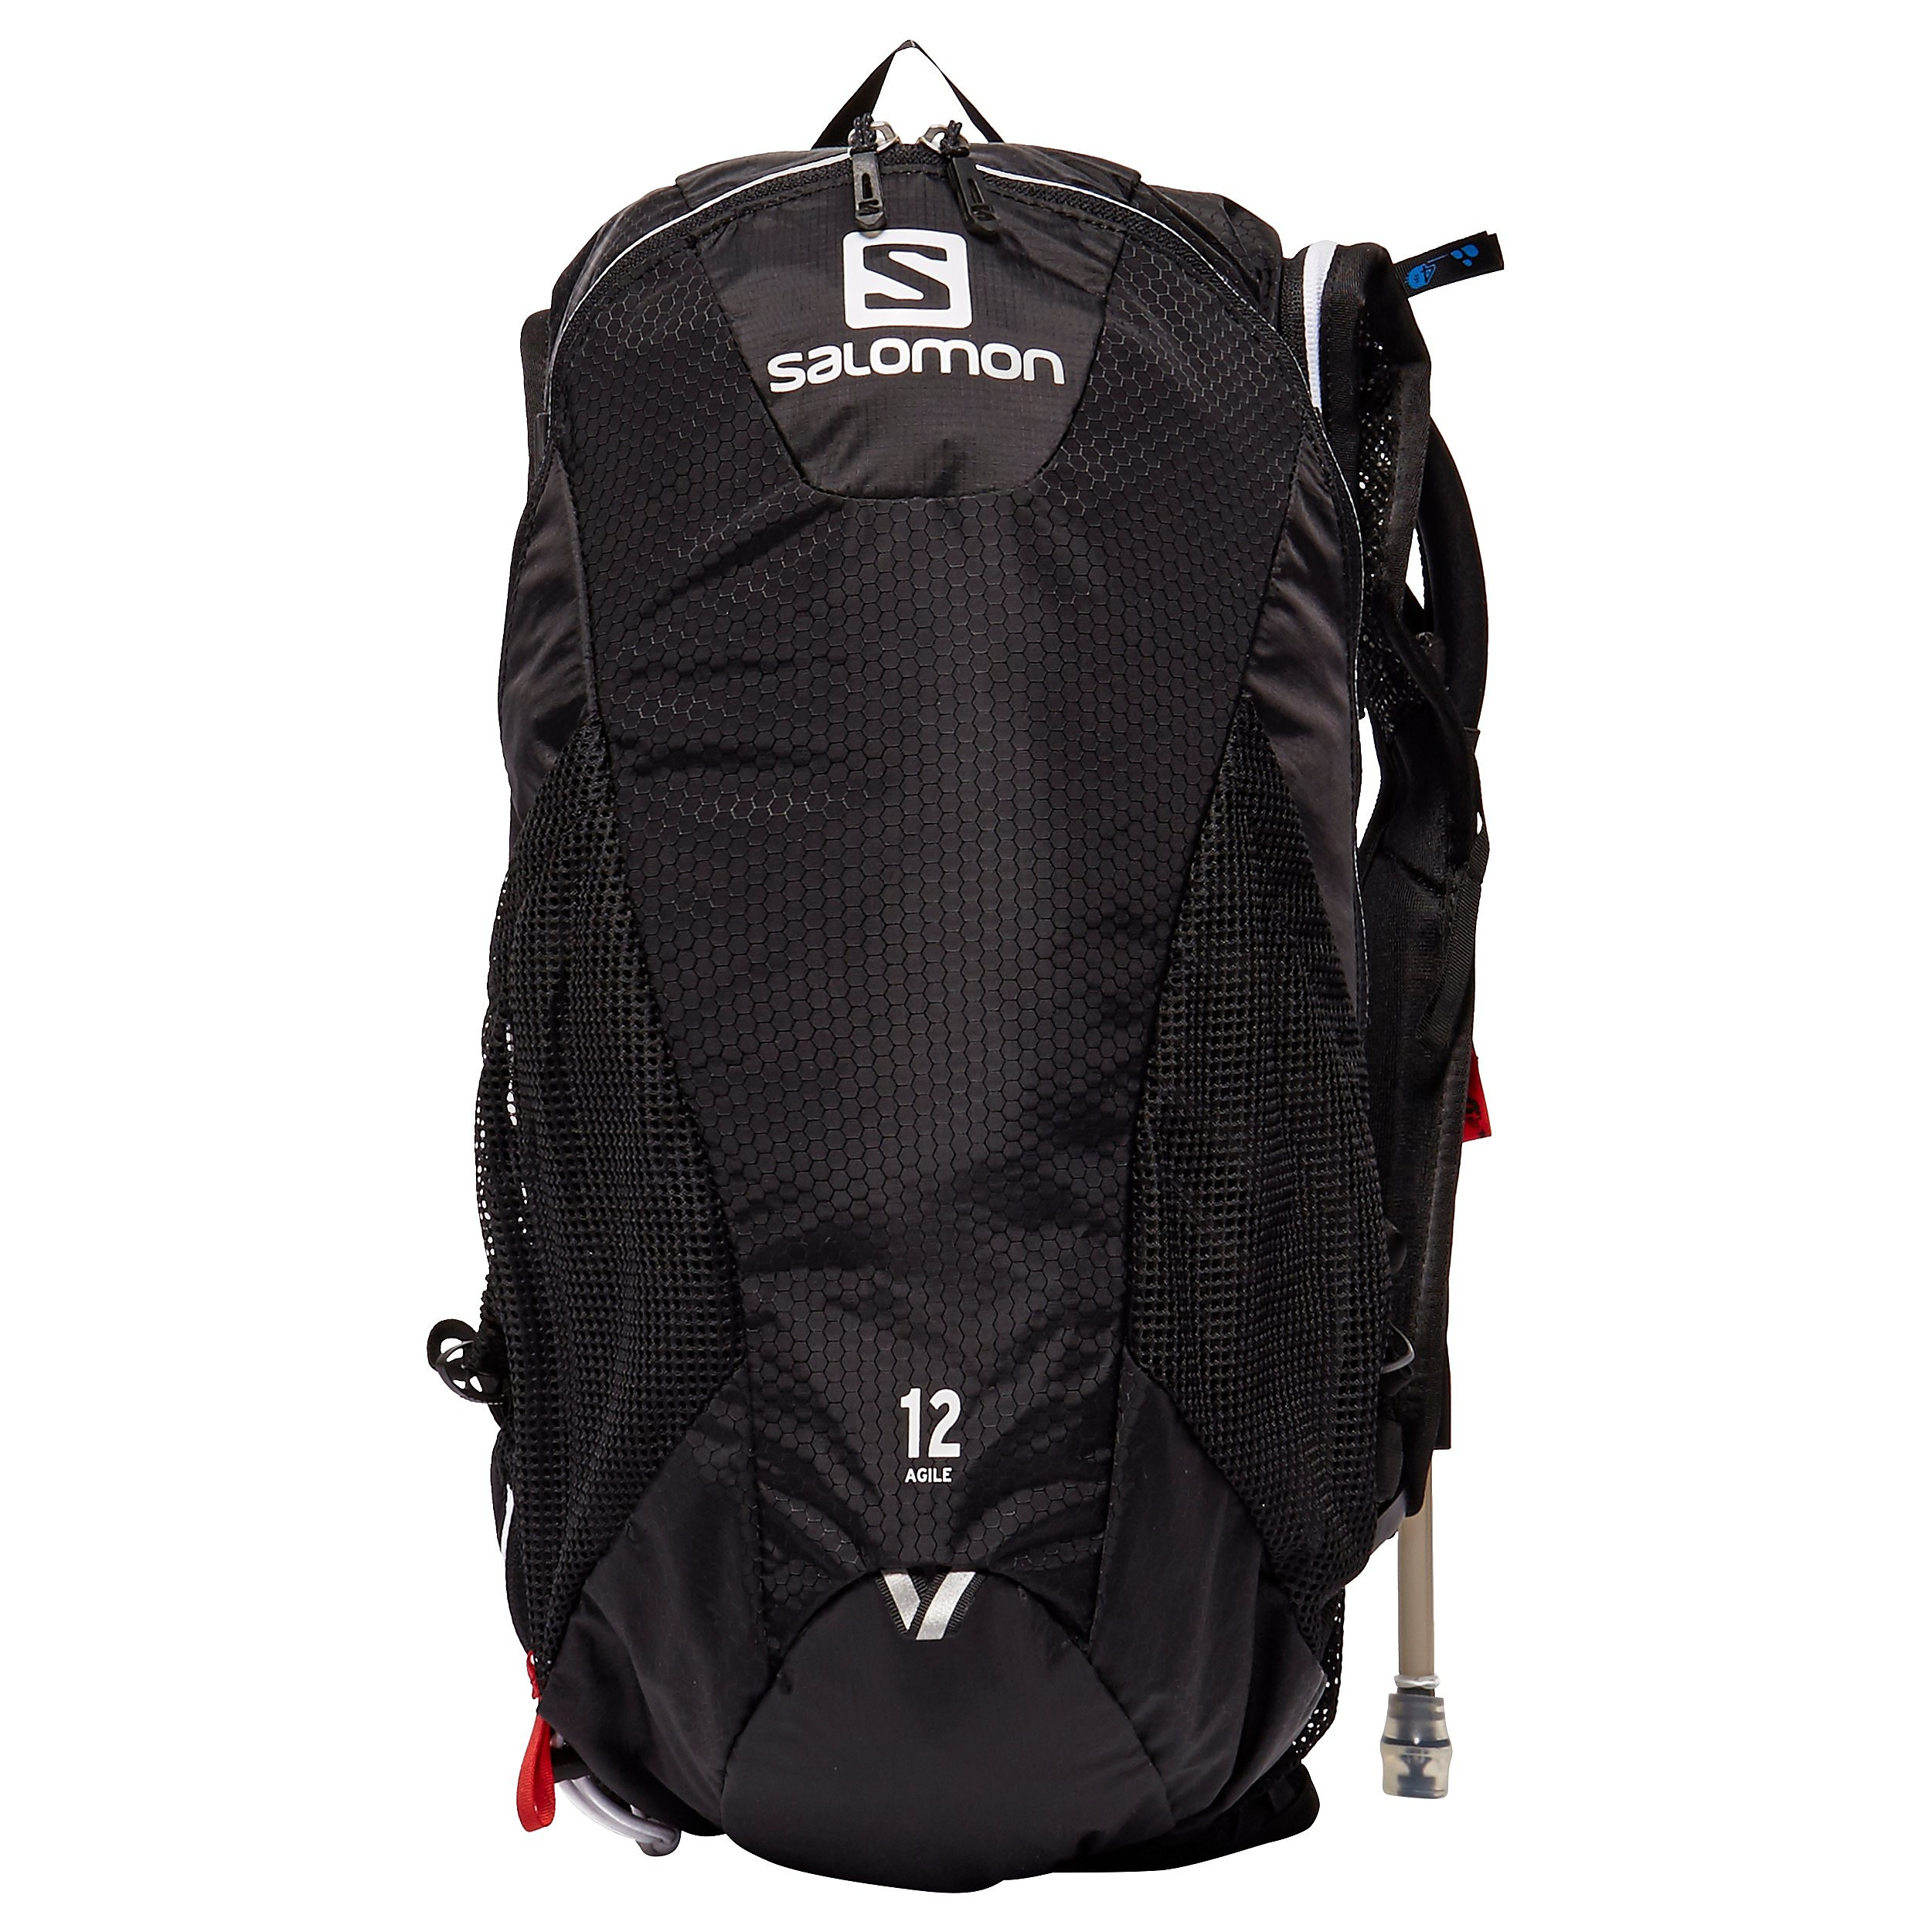 Salomon 12L Capacity Running Backpack